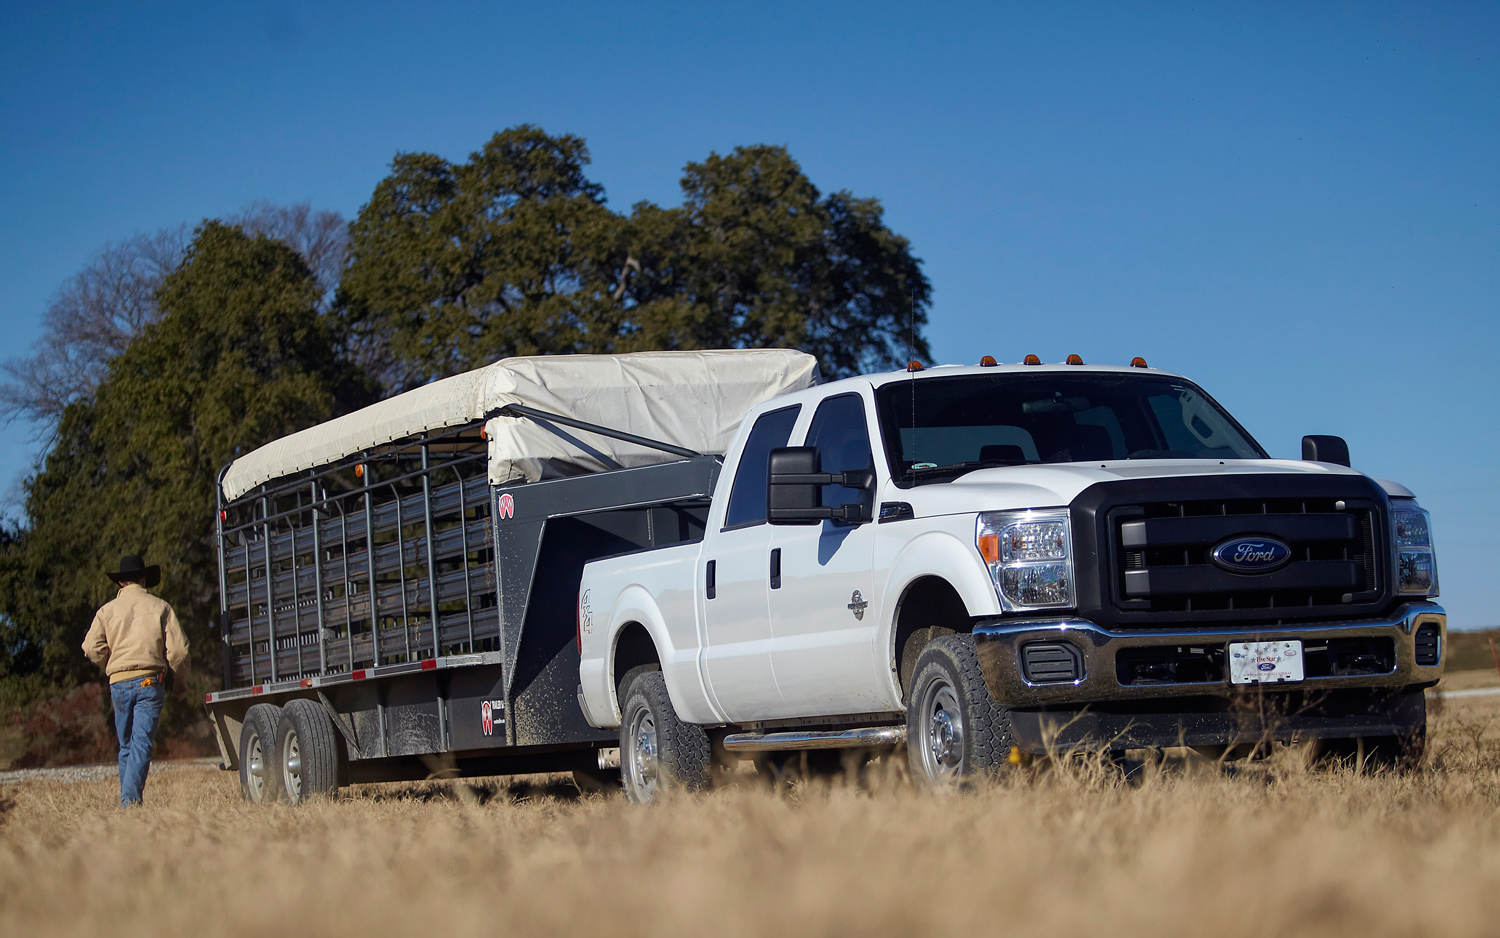 Ford Super Duty >> FORD F-350 SUPER DUTY - 920px Image #2